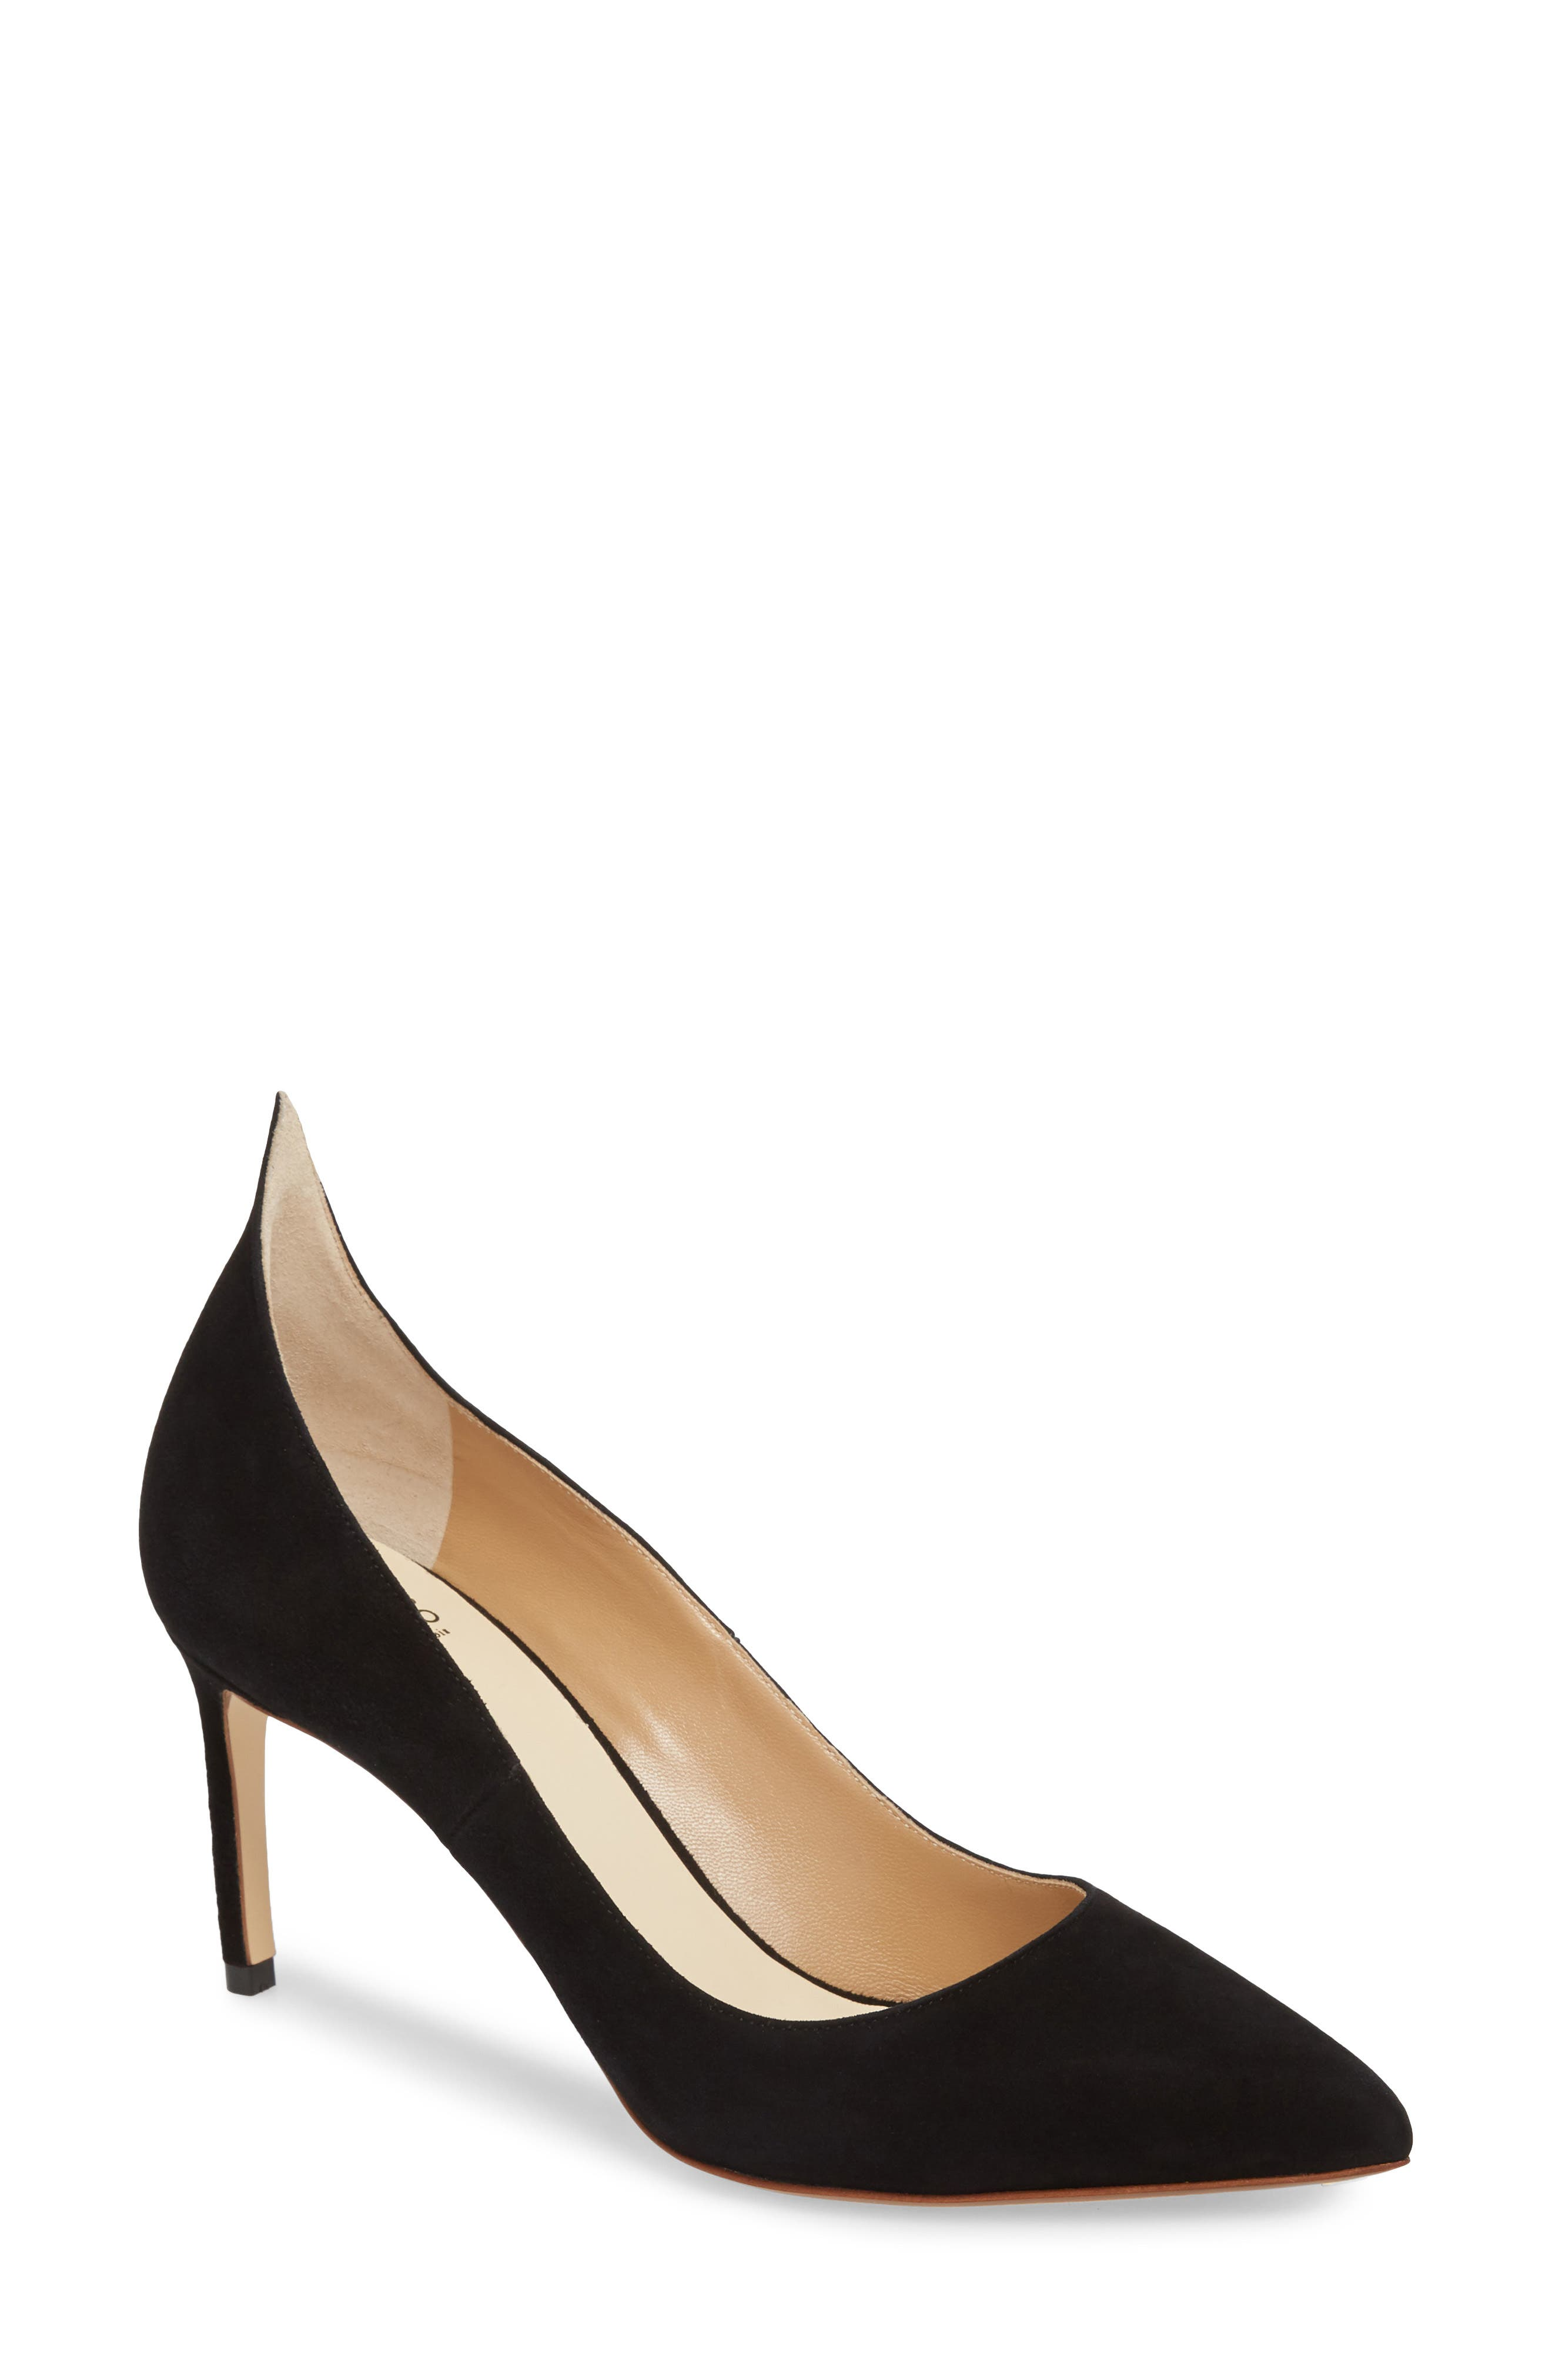 FRANCESCO RUSSO, Flame Pointy Toe Pump, Main thumbnail 1, color, BLACK